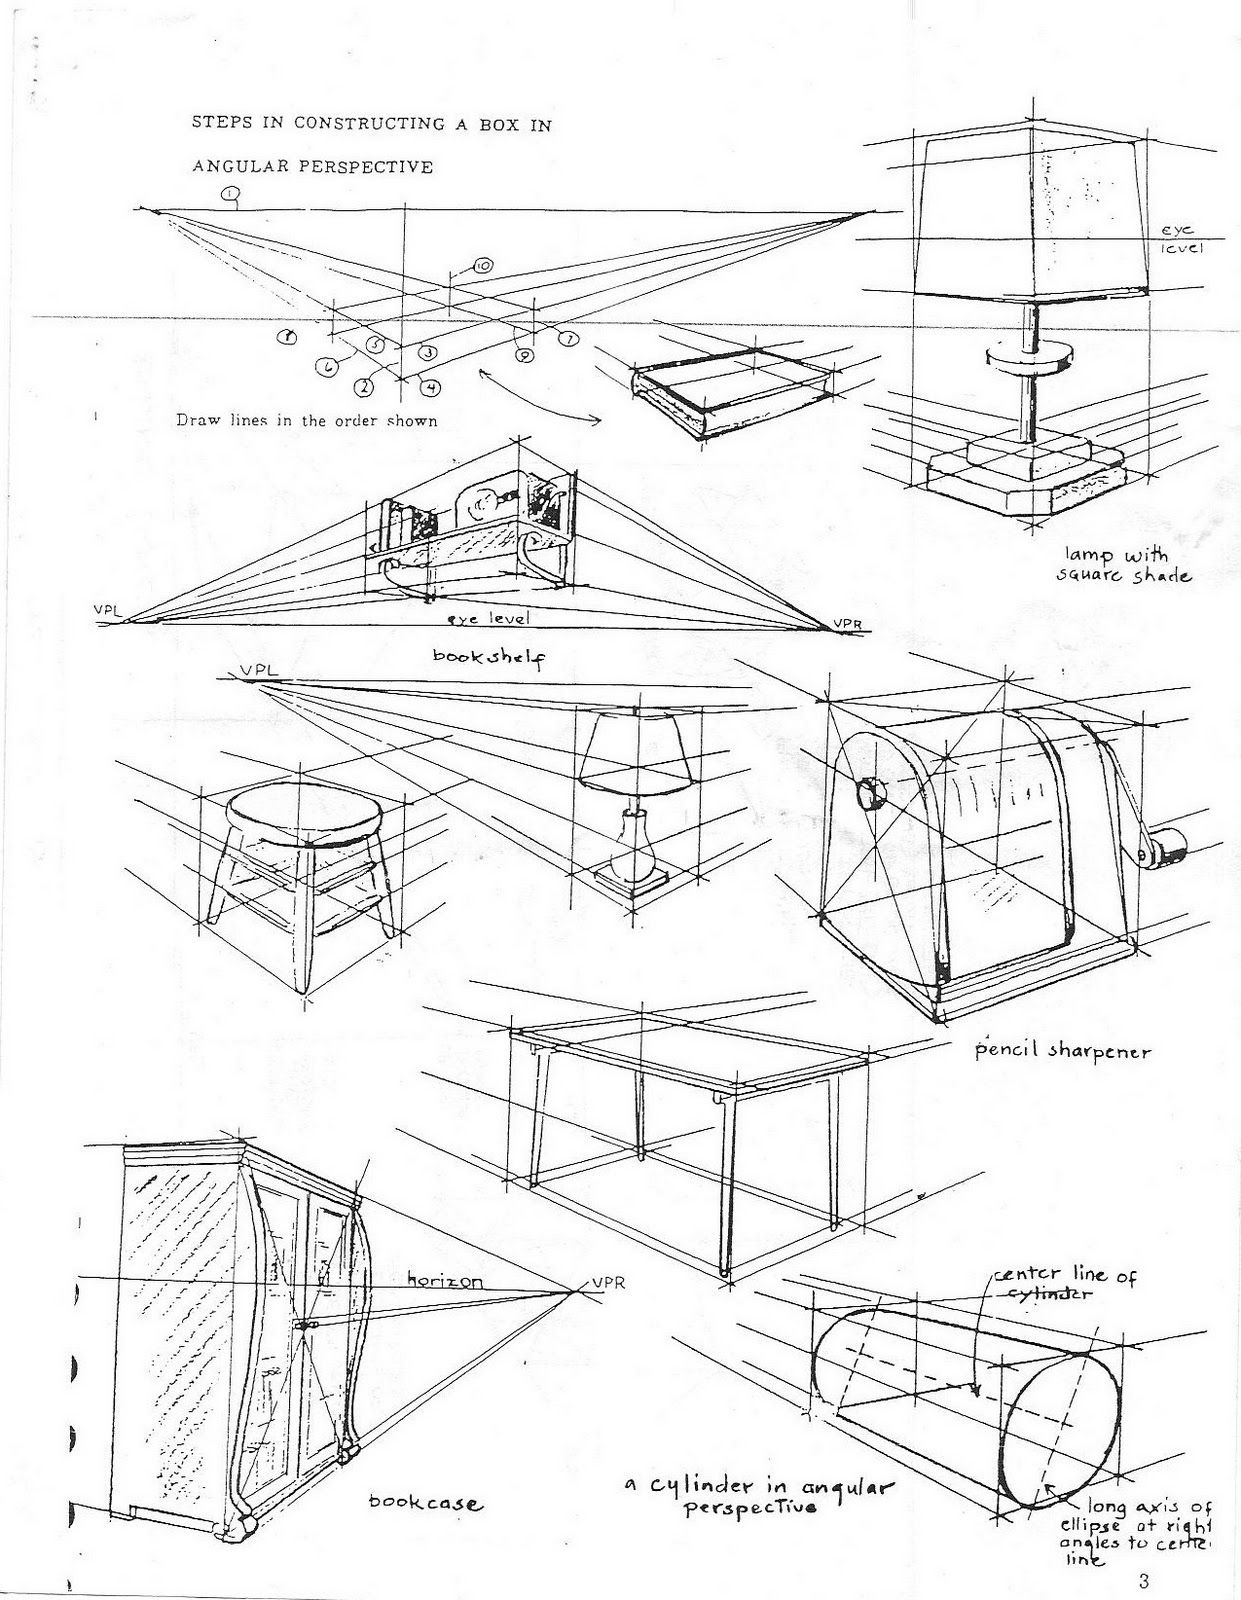 Worksheets One Point Perspective Worksheet 1 point perspective worksheet scenarios for objects in two and one